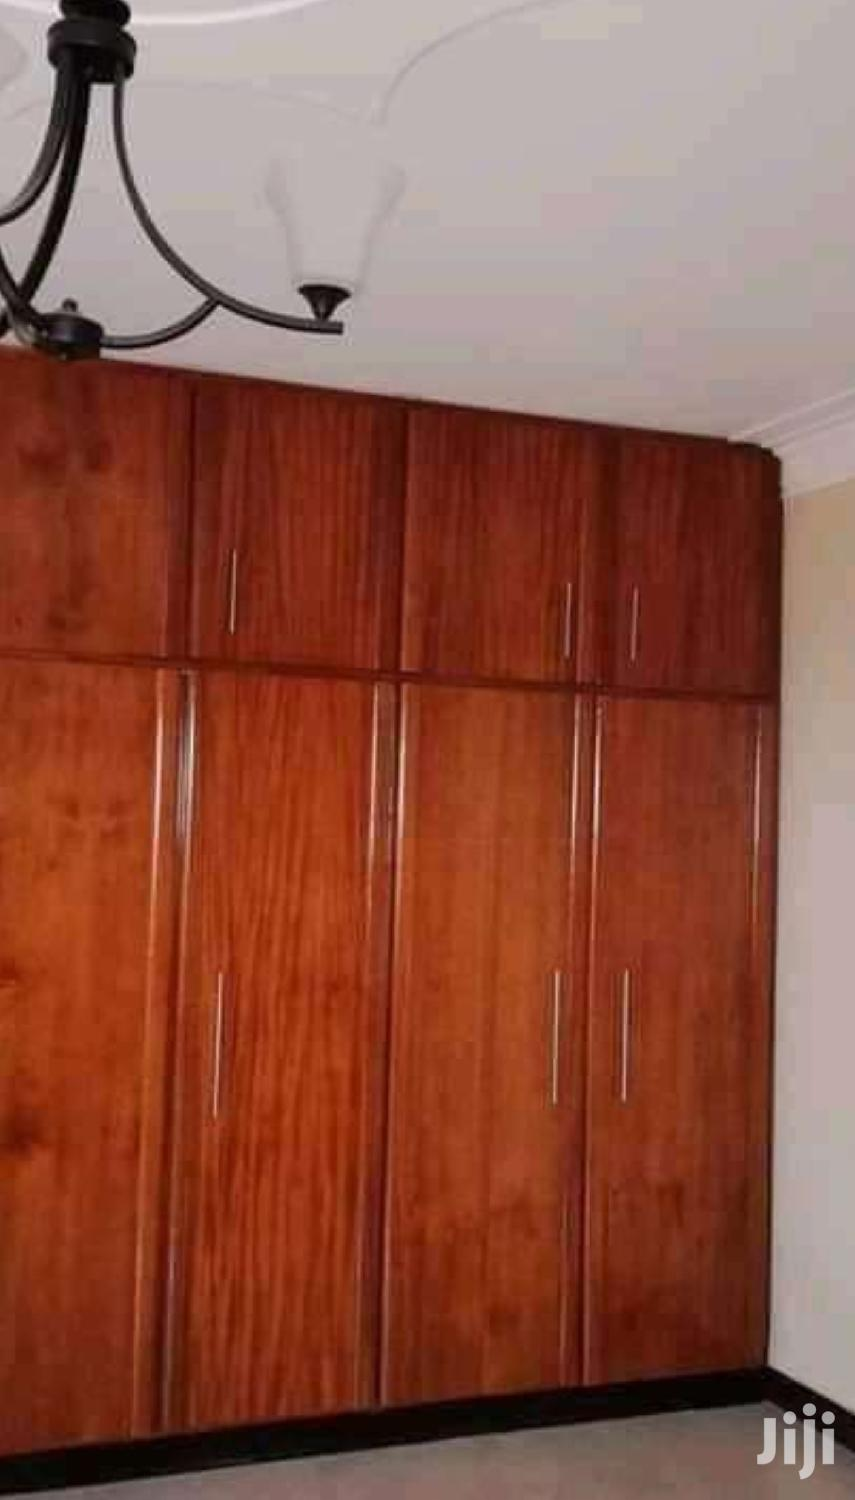 Bukoto Kyebando 3 Bedrooms Apartment For Rent | Houses & Apartments For Rent for sale in Kampala, Central Region, Uganda